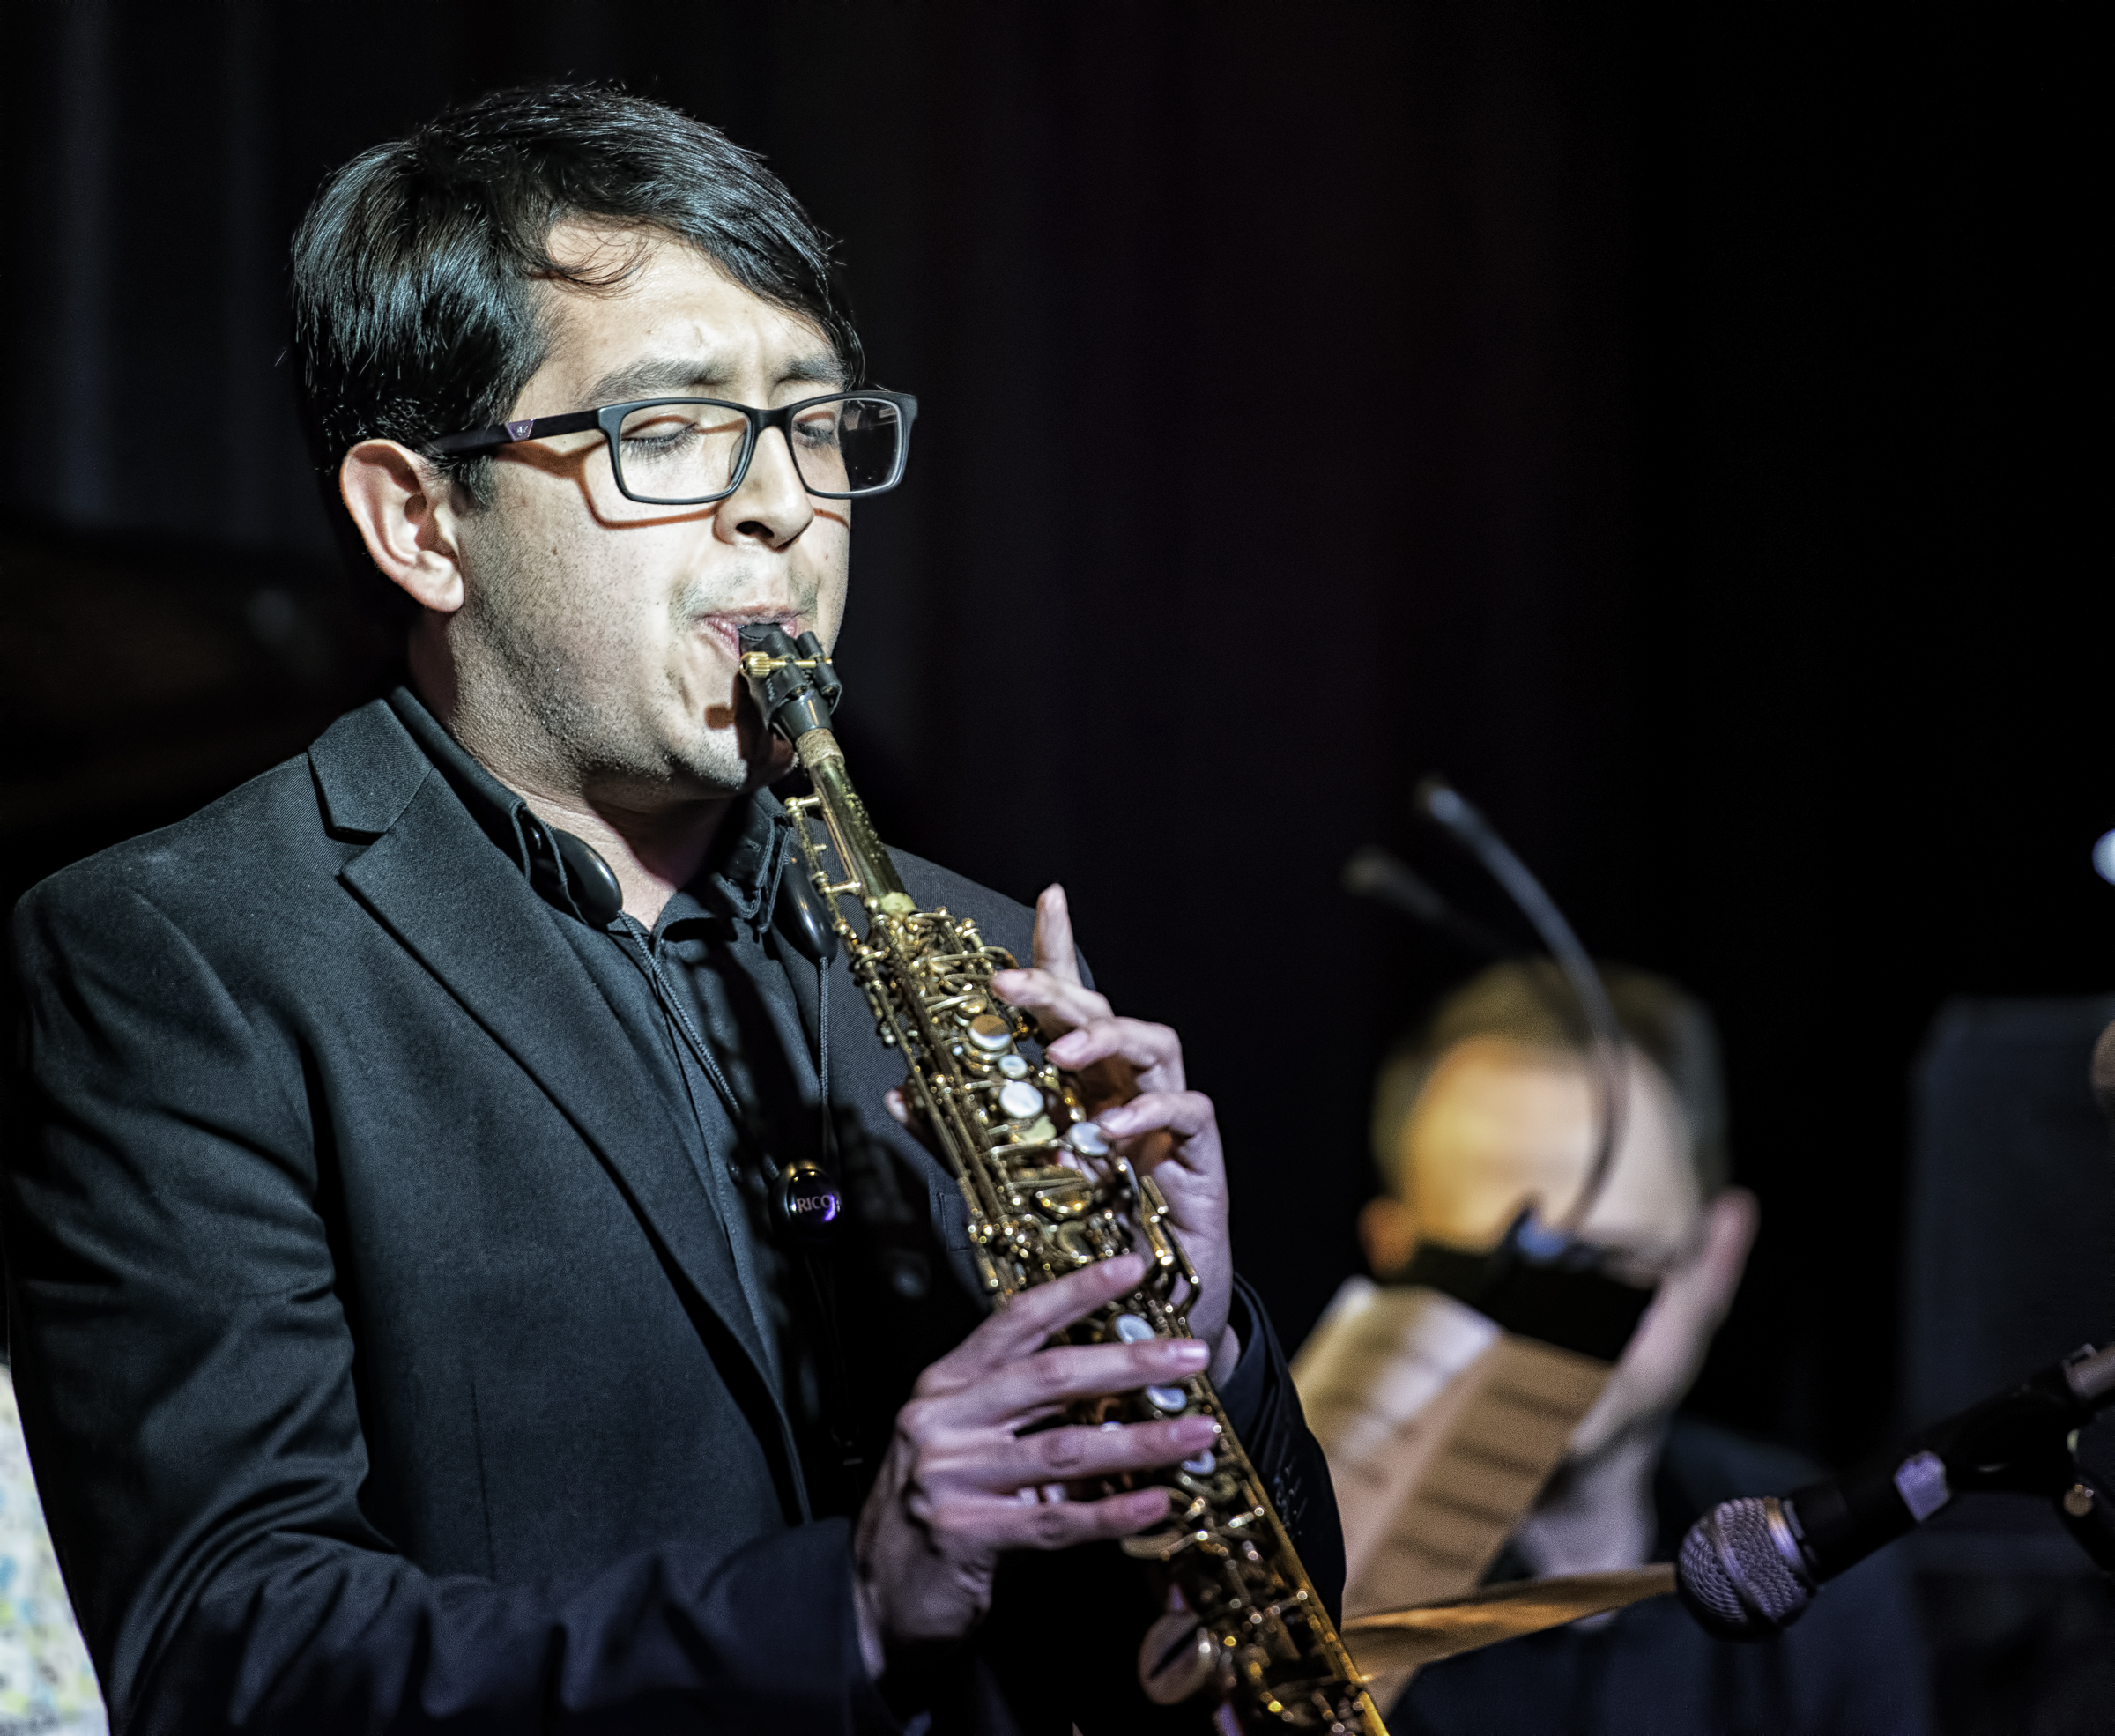 Alan Costa With Eric Rasmussen And Scottsdale Community College Jazz Orchestra With John Hollenbeck At The Nash In Phoenix